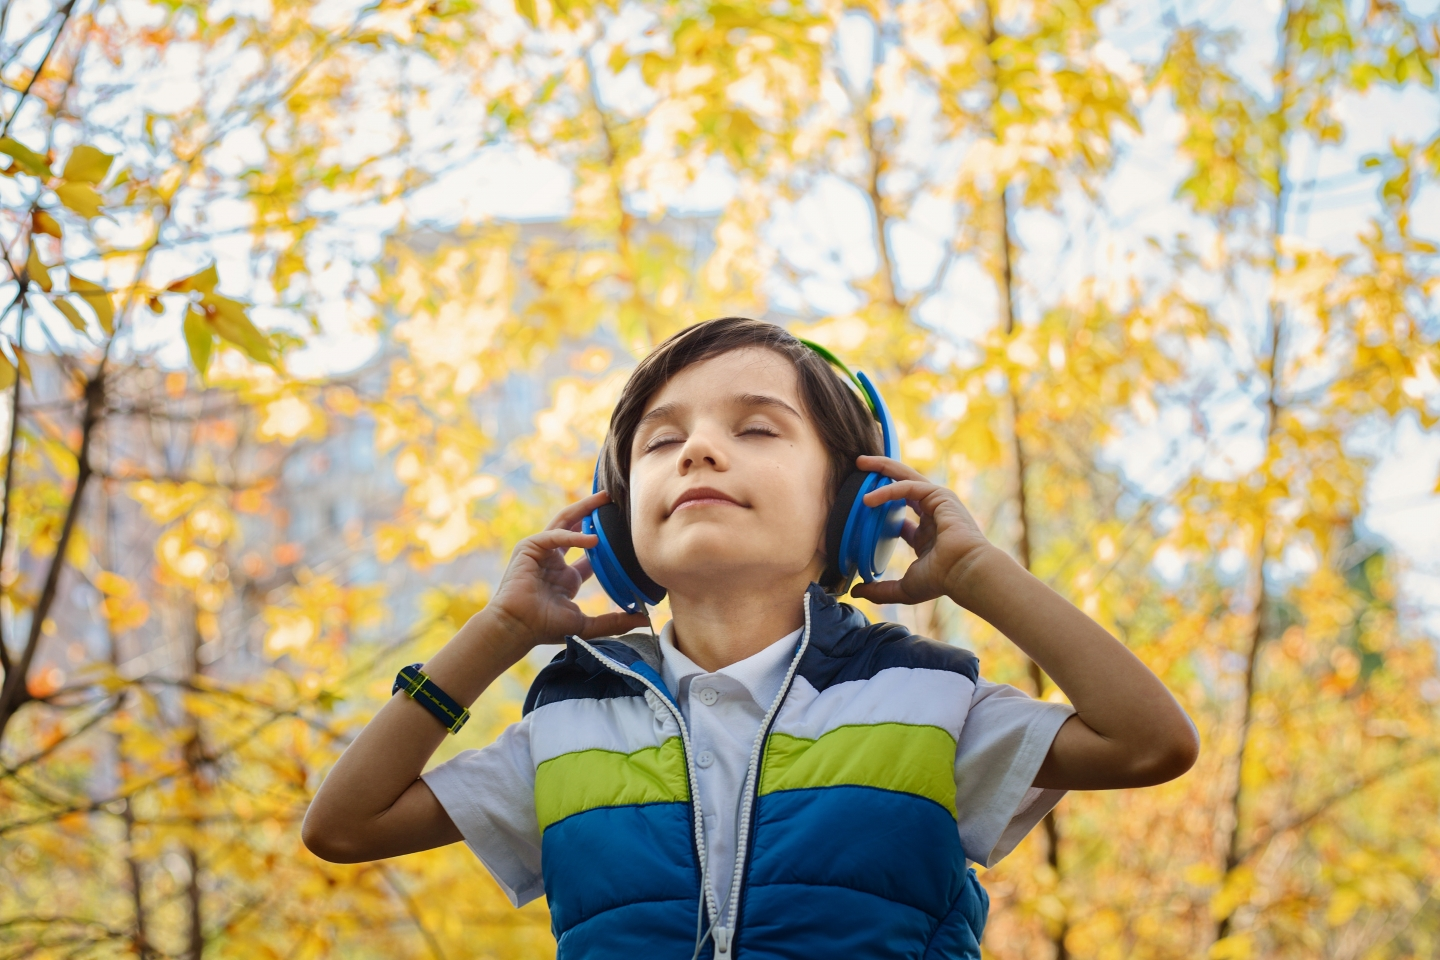 Child listening to headphones in nature